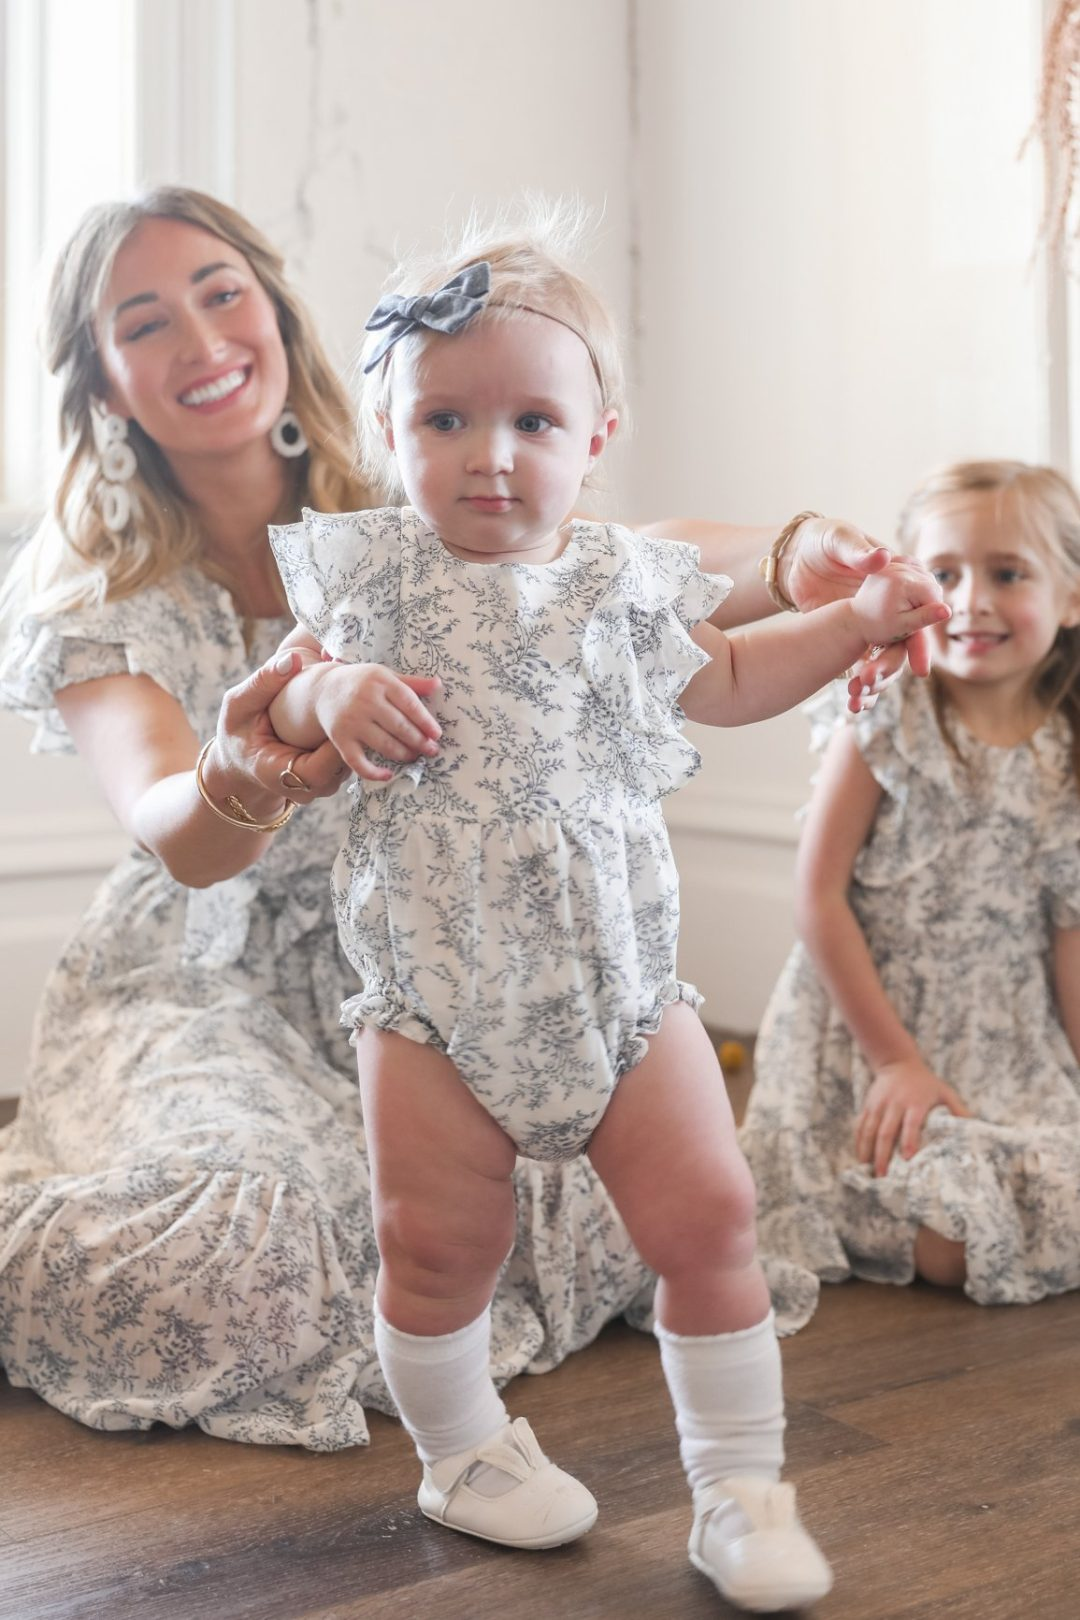 Cute mommy and me outfits - baby and mom matching outfits